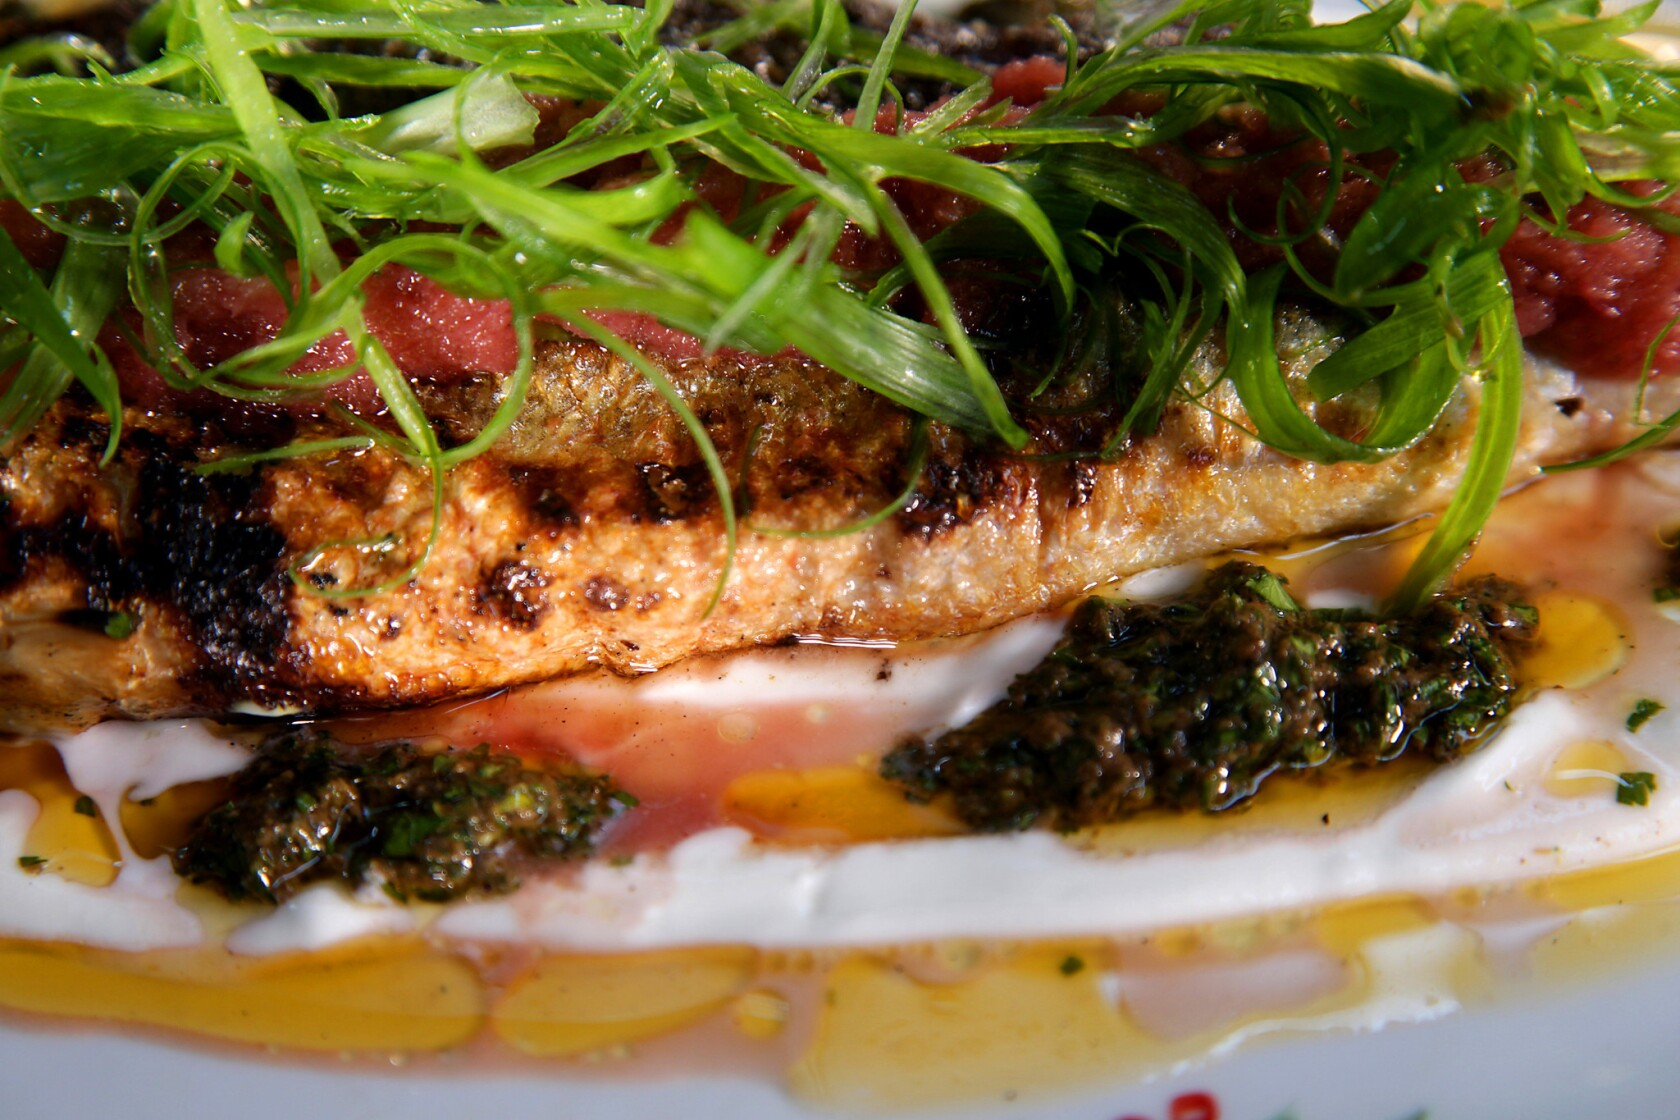 Review: Jonathan Gold is intrigued by the Israeli-inspired